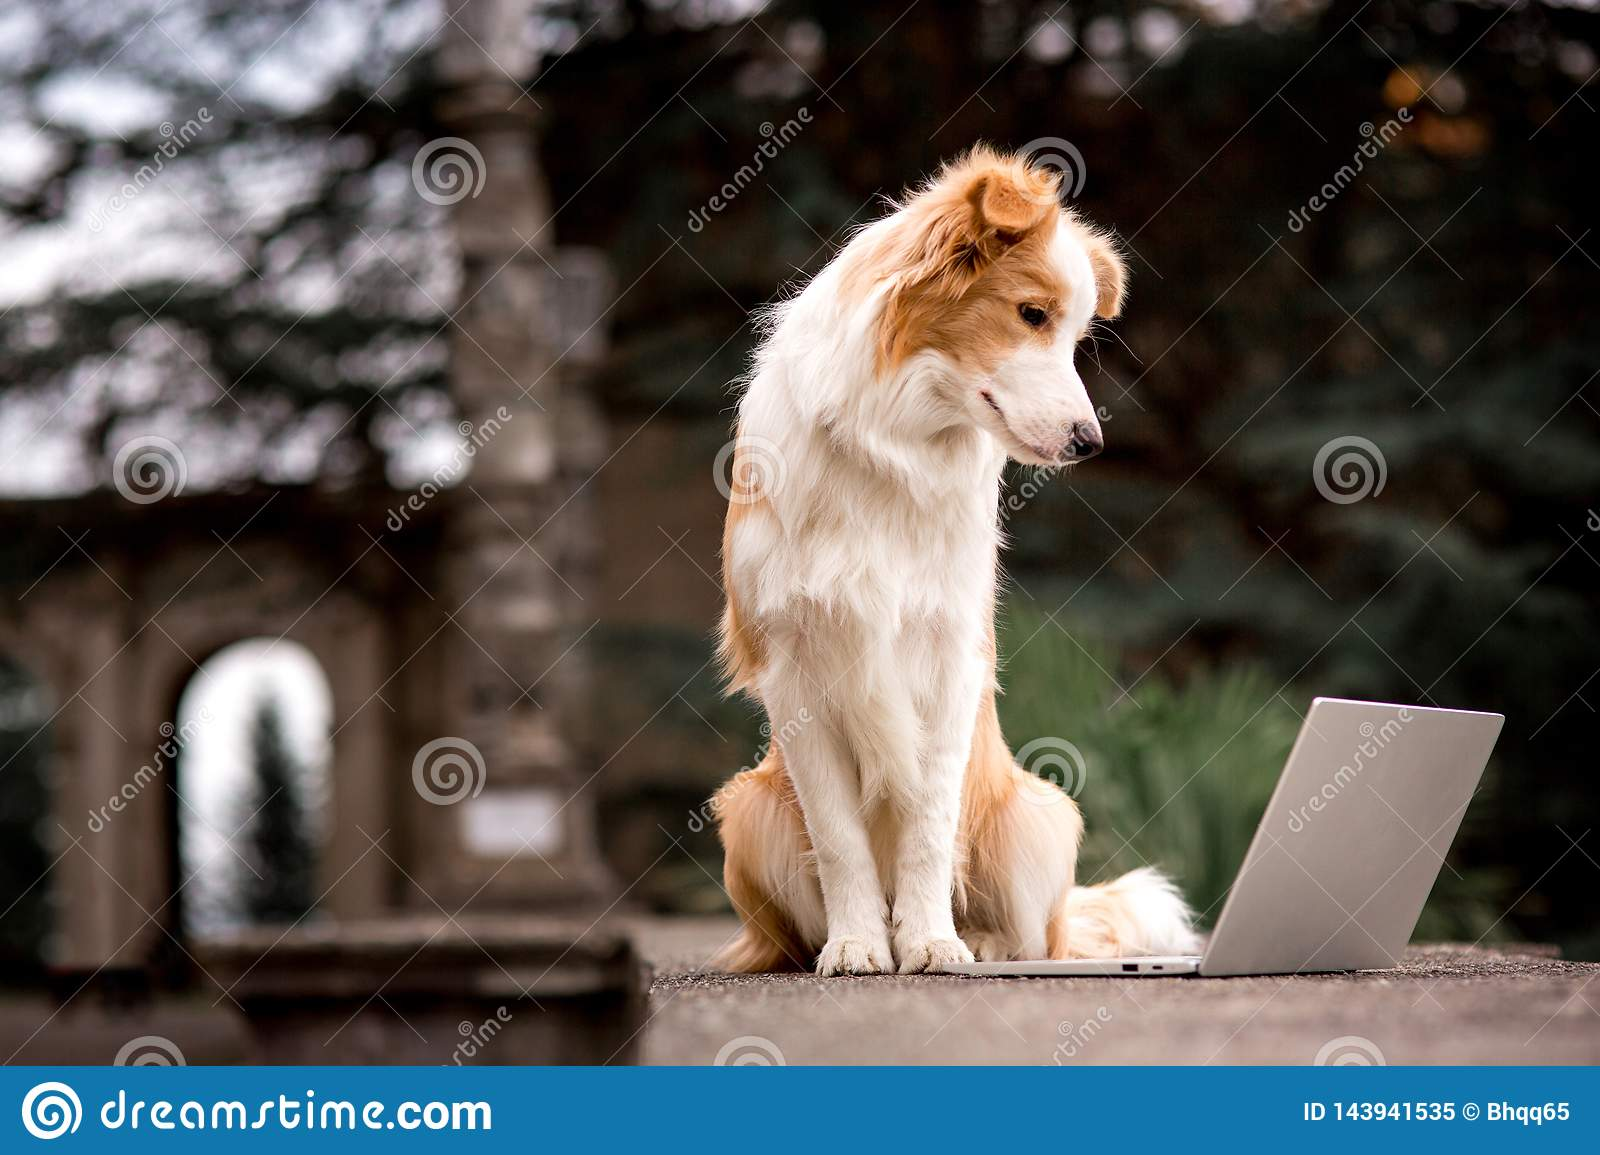 Adorable red dog border collie sitting on railing and playing laptop with happiness face